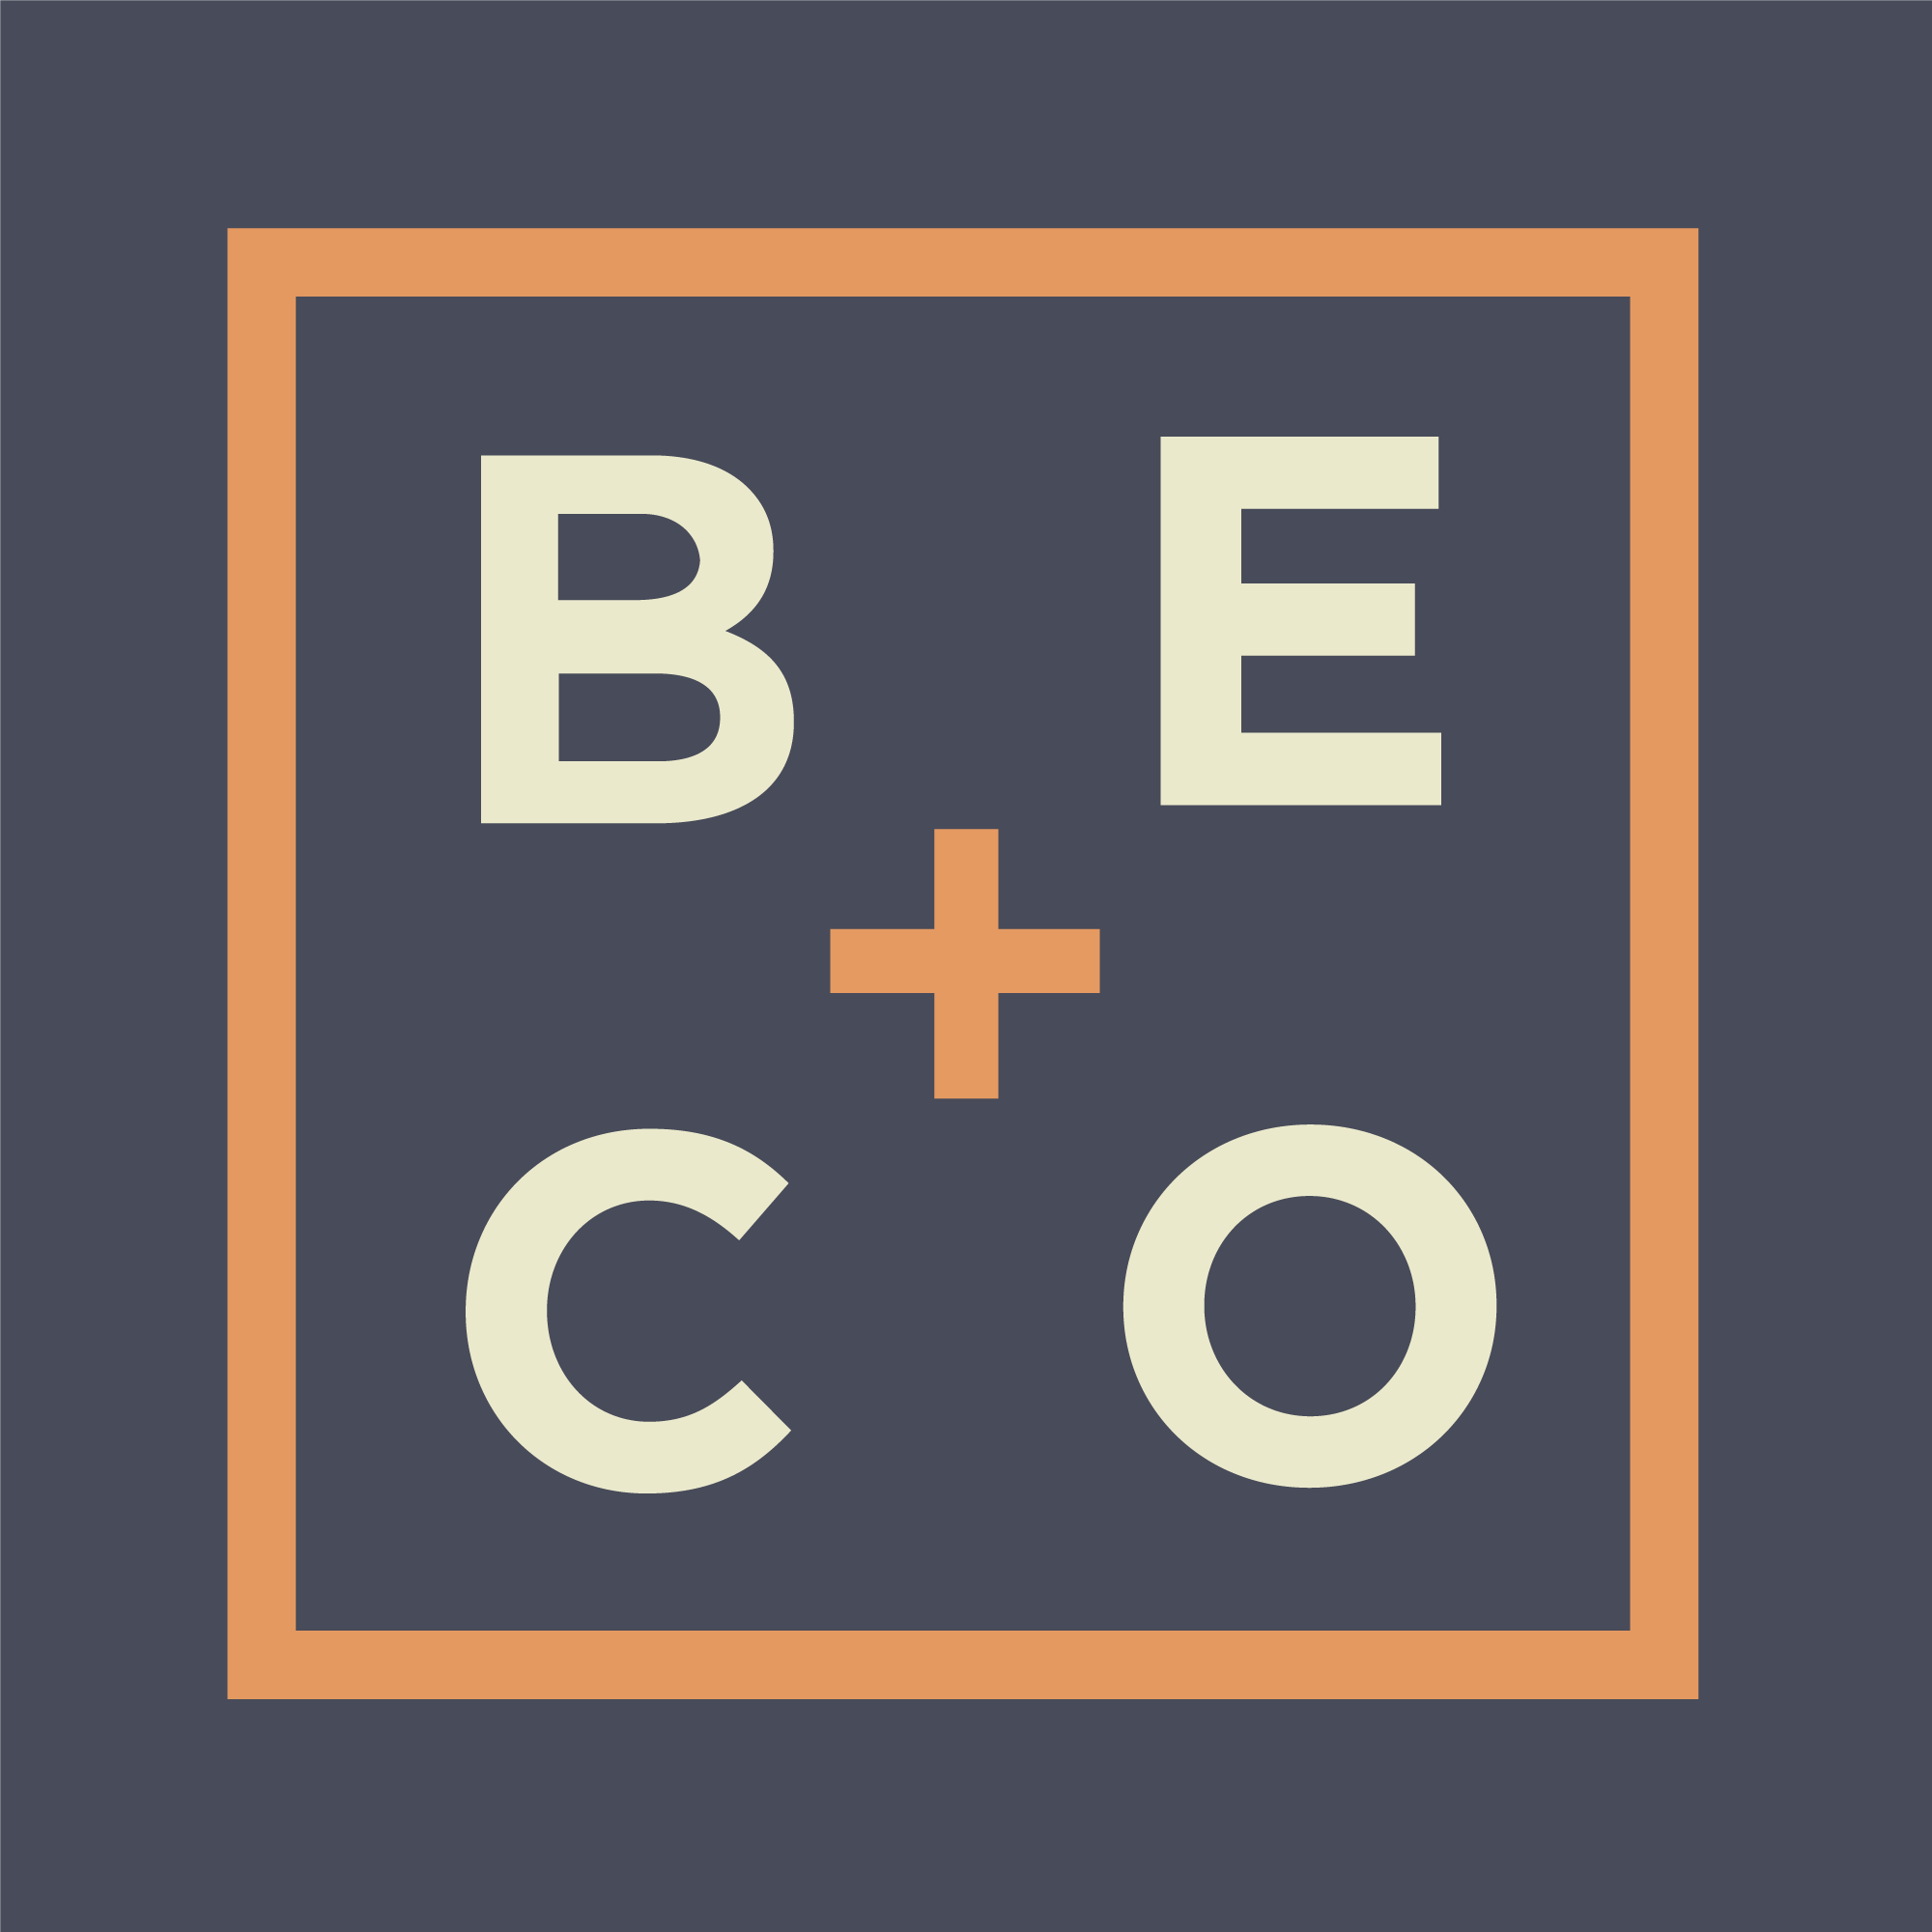 Logo_BECO.png